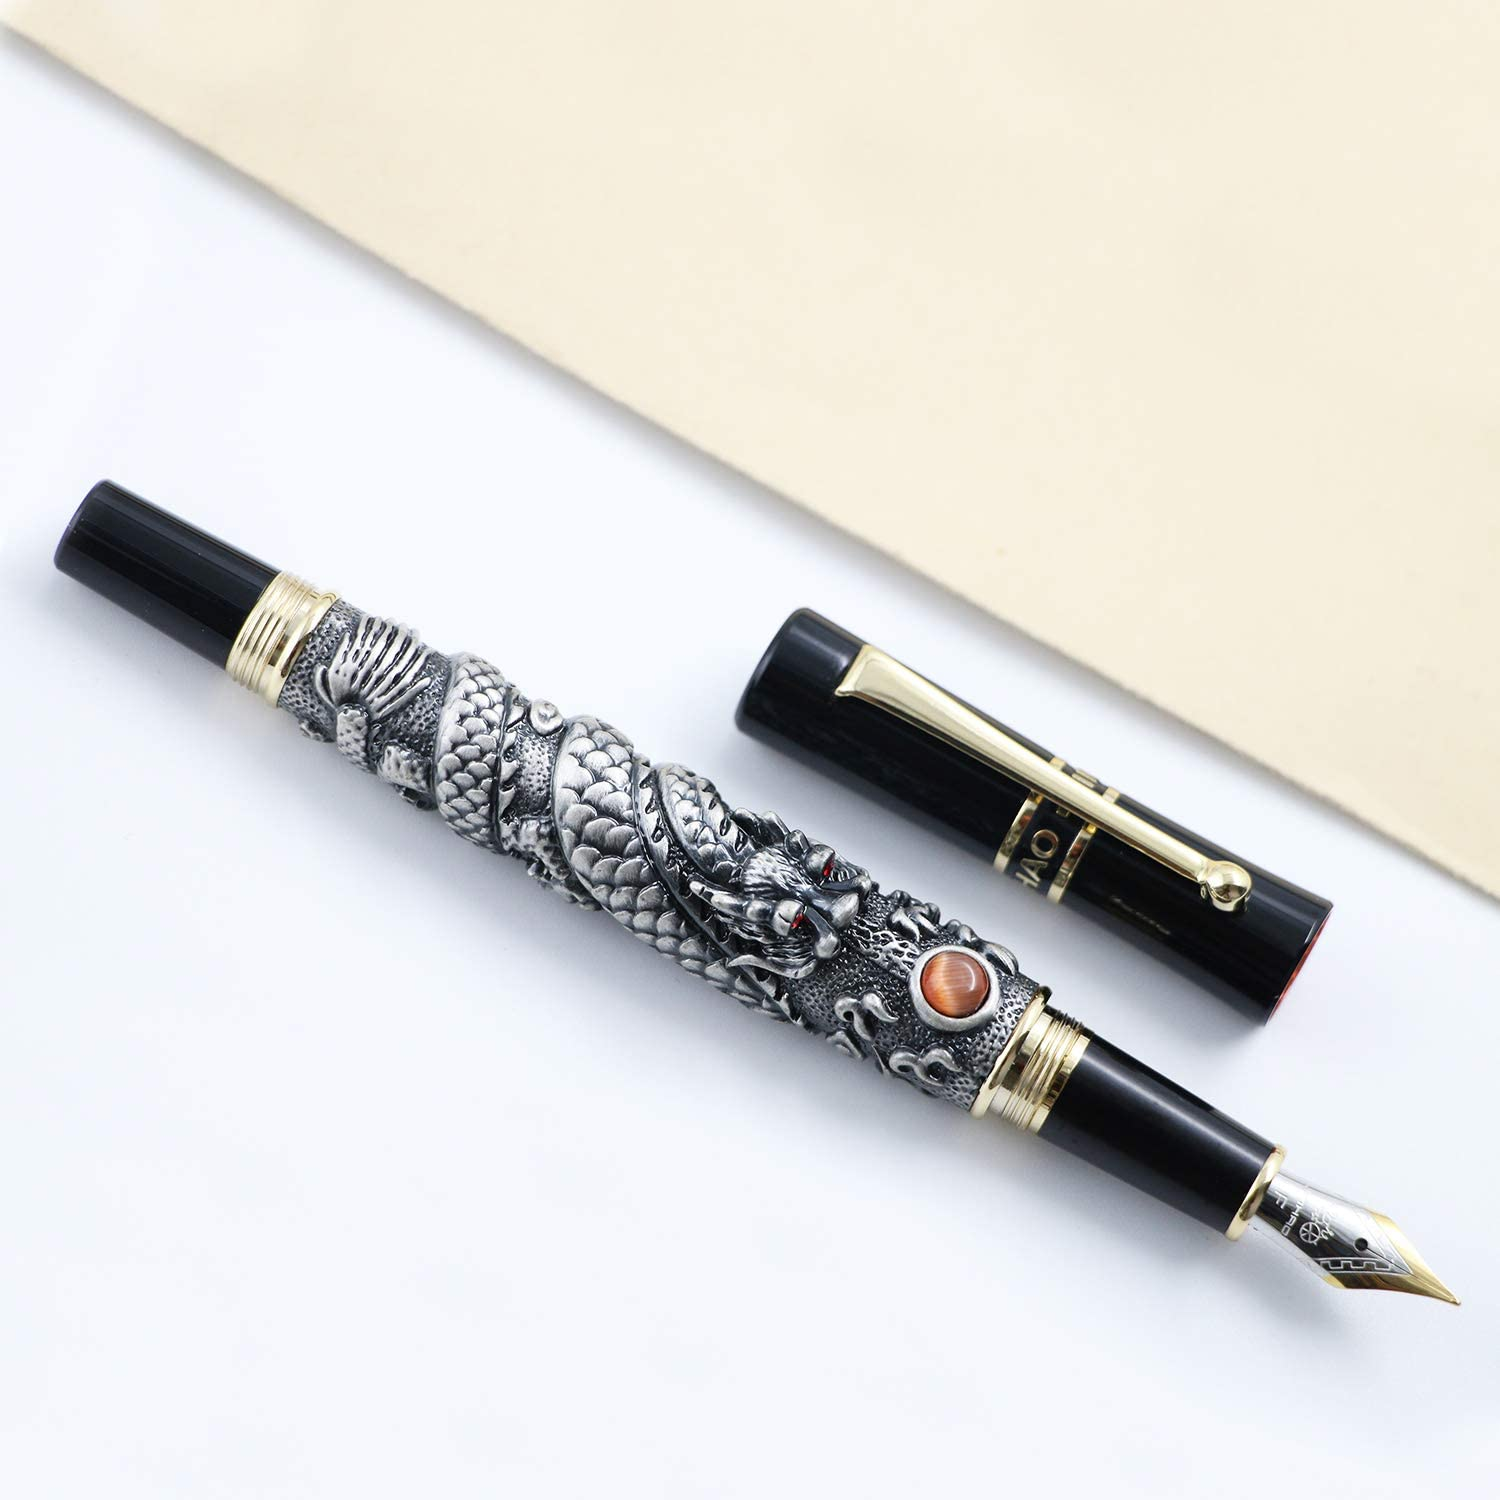 Luxury Jinhao Flying Dragon Ancient silver Fountain Pen 0.5mm Nib 18KGP Calligraphy Ink Pens for Writing Gift